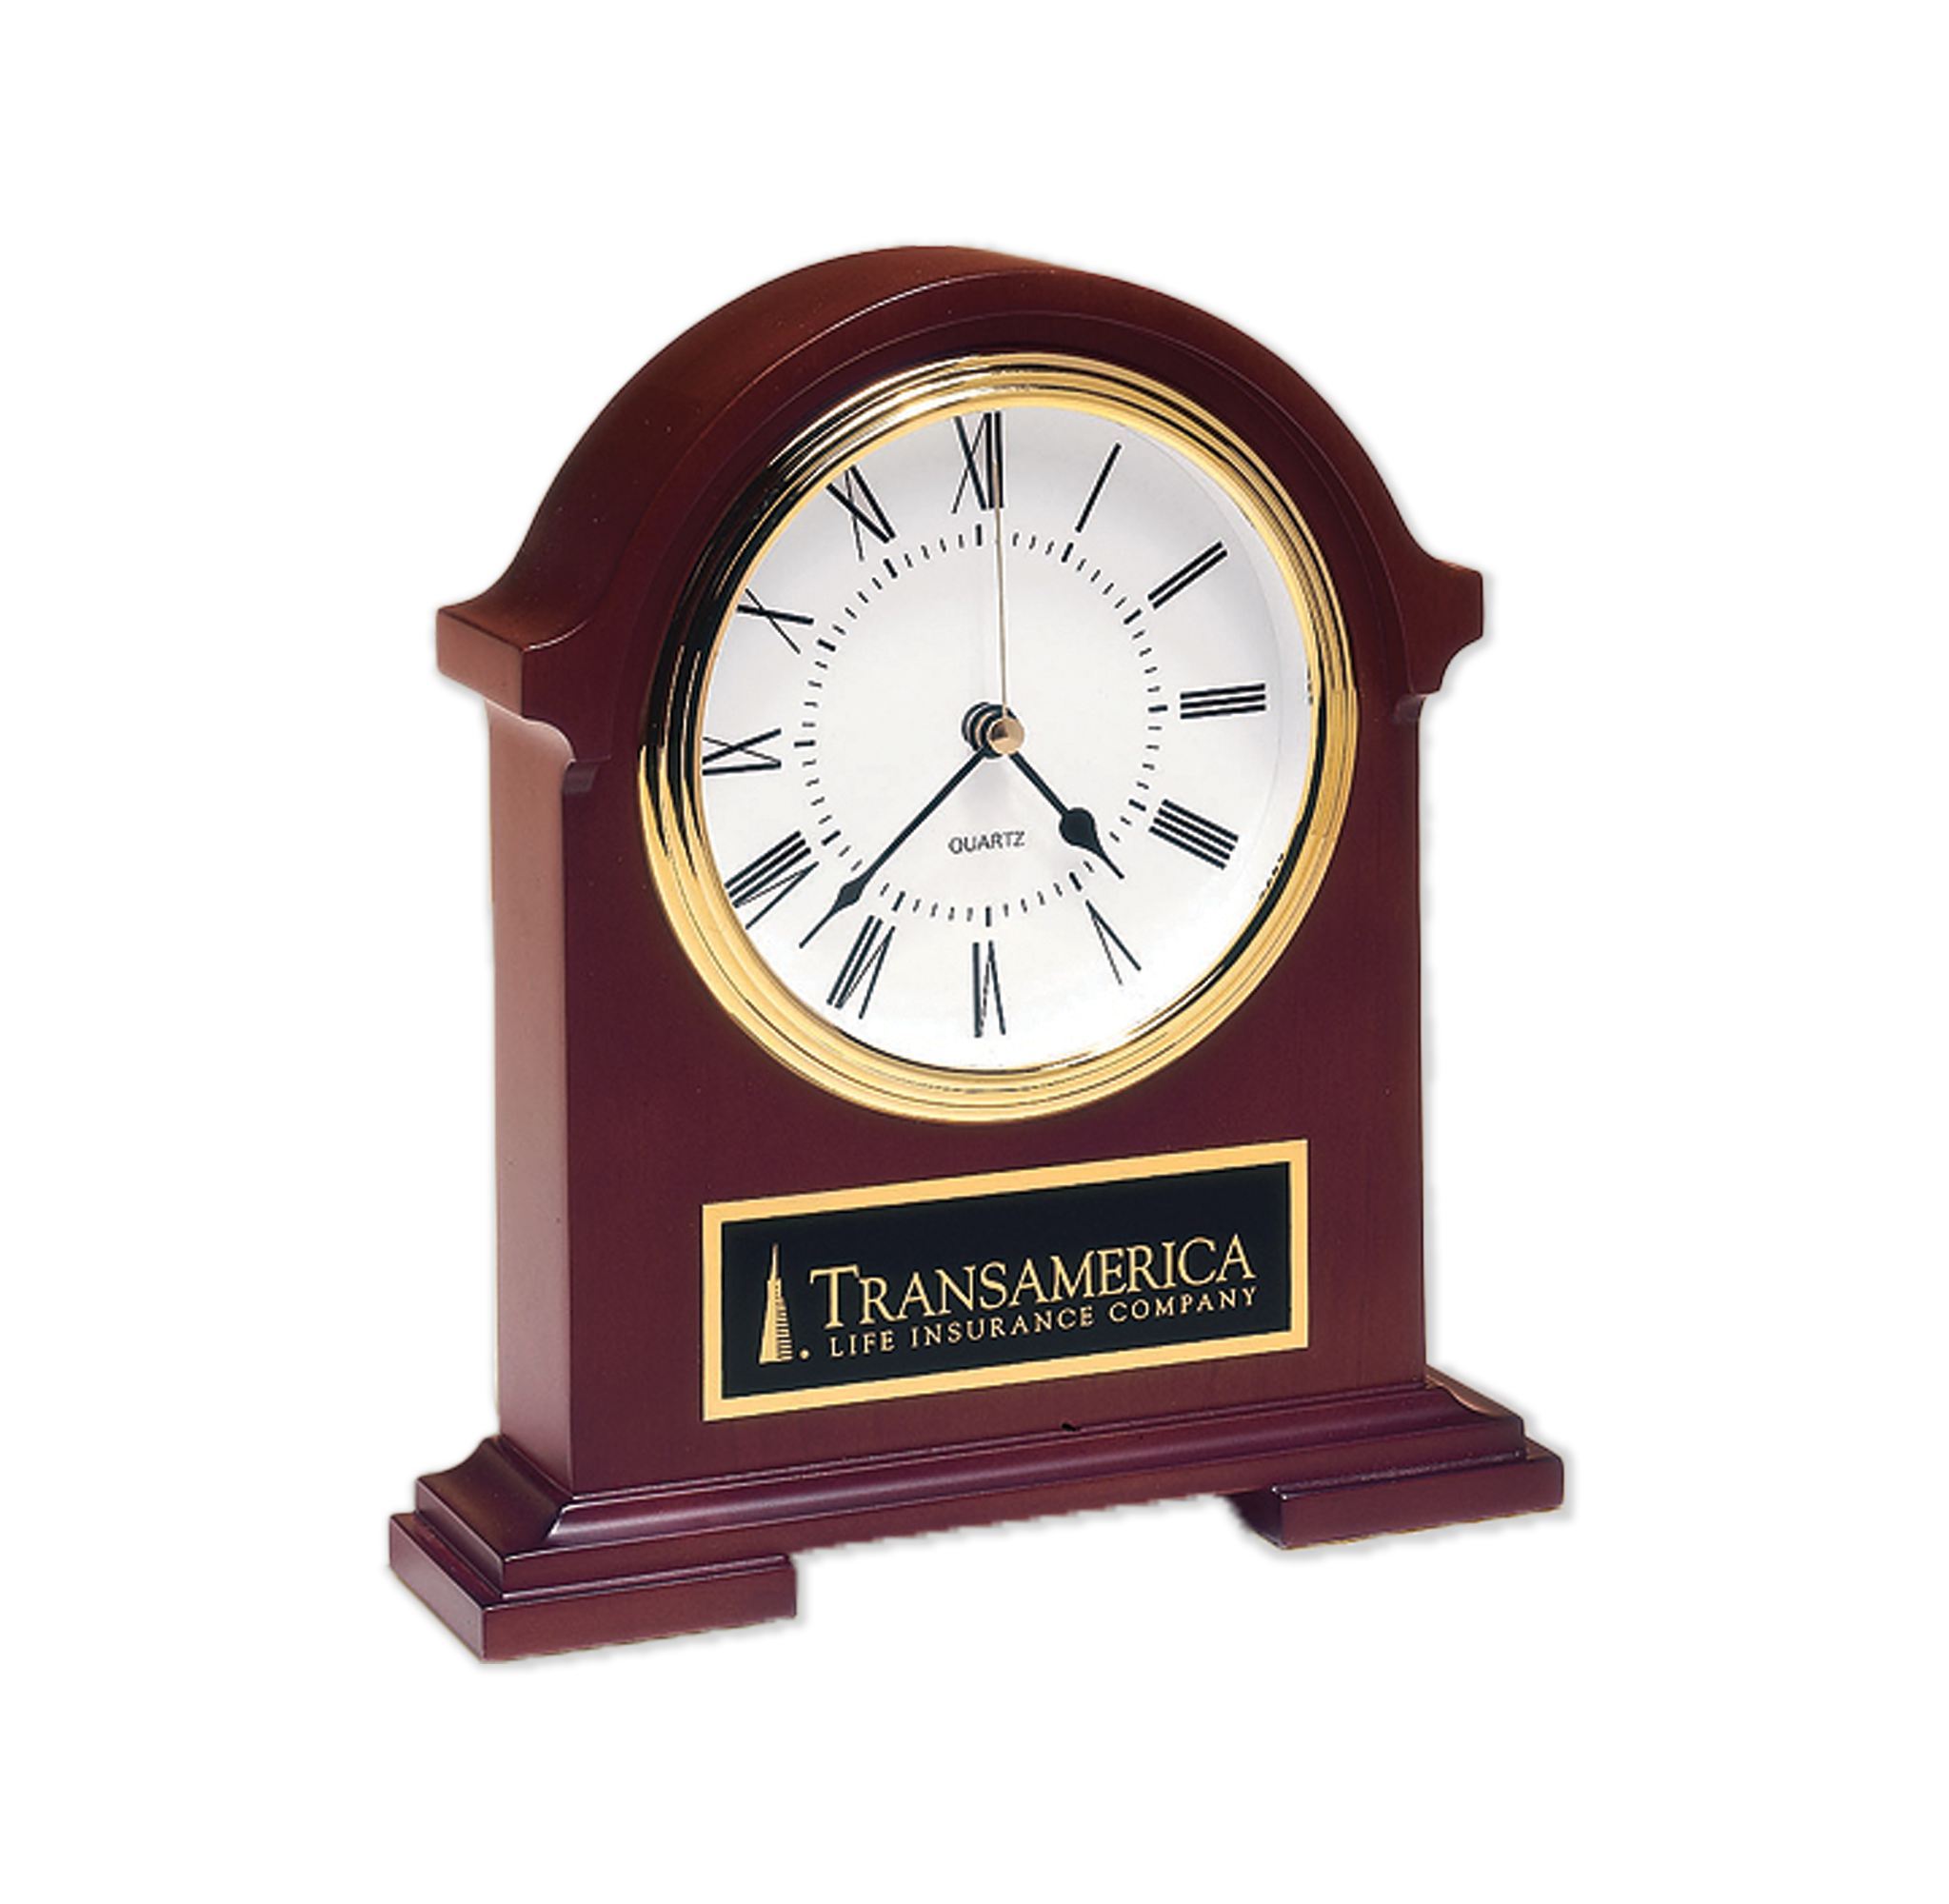 personalized-clock-awards